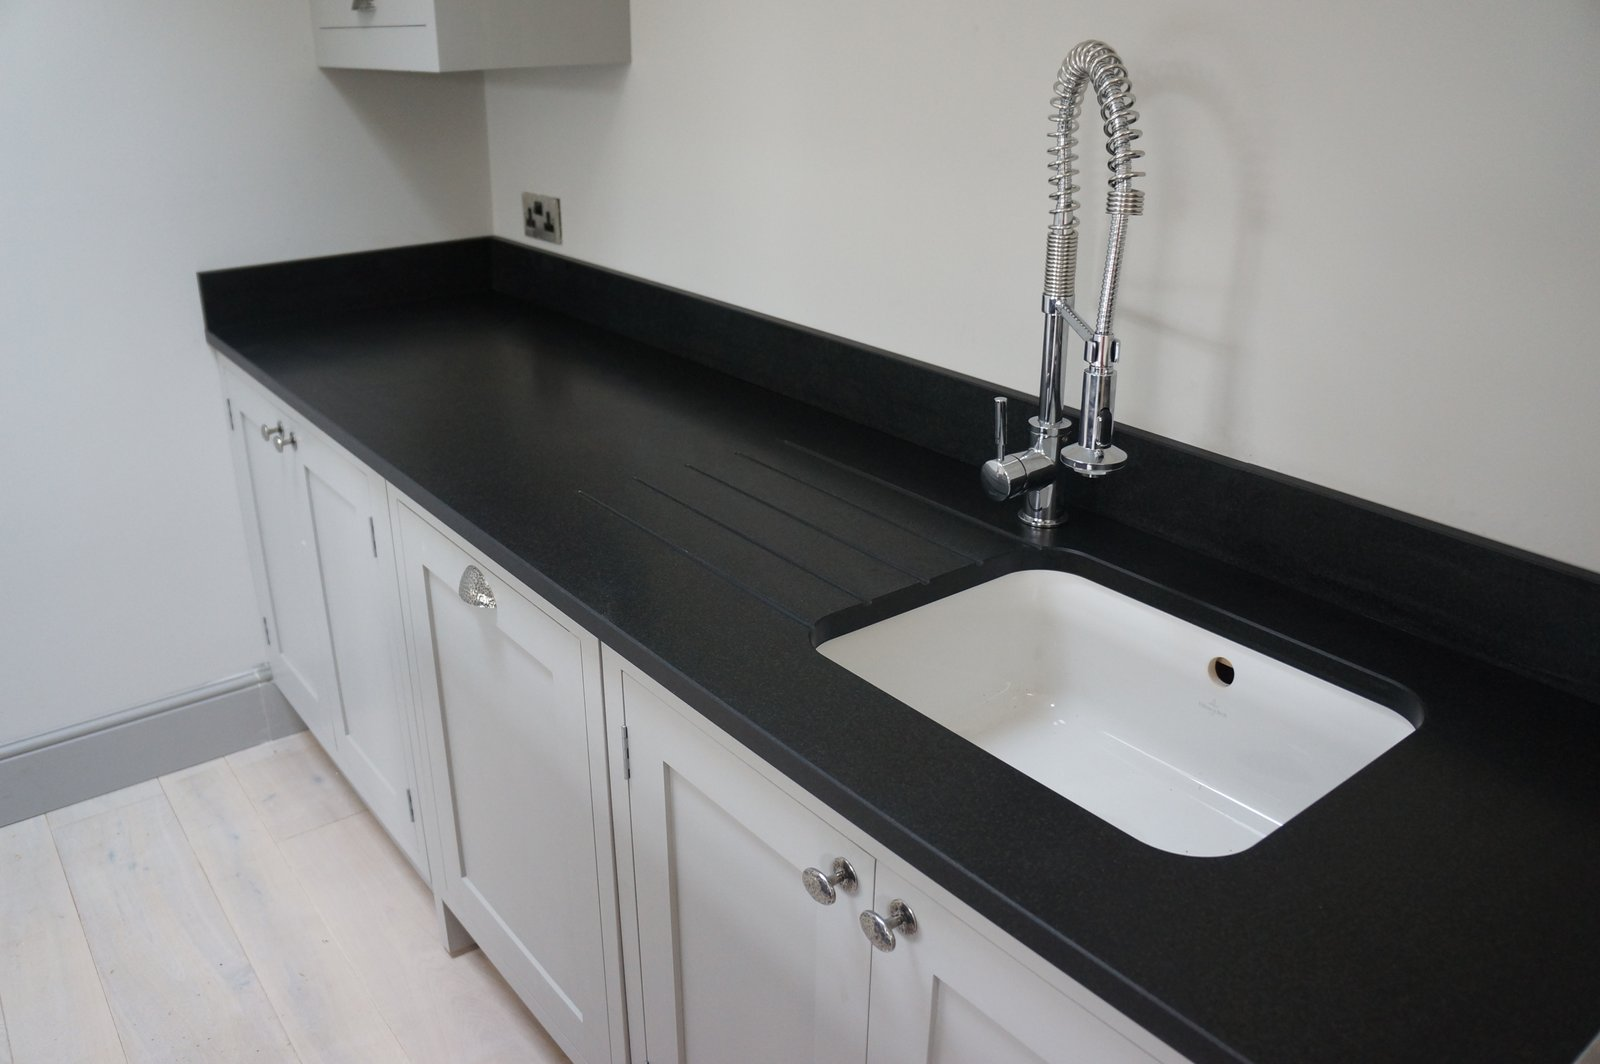 Granite Sink India : Eclipsia Bianca & Indian Jet Black -flamed and brushed granite ...